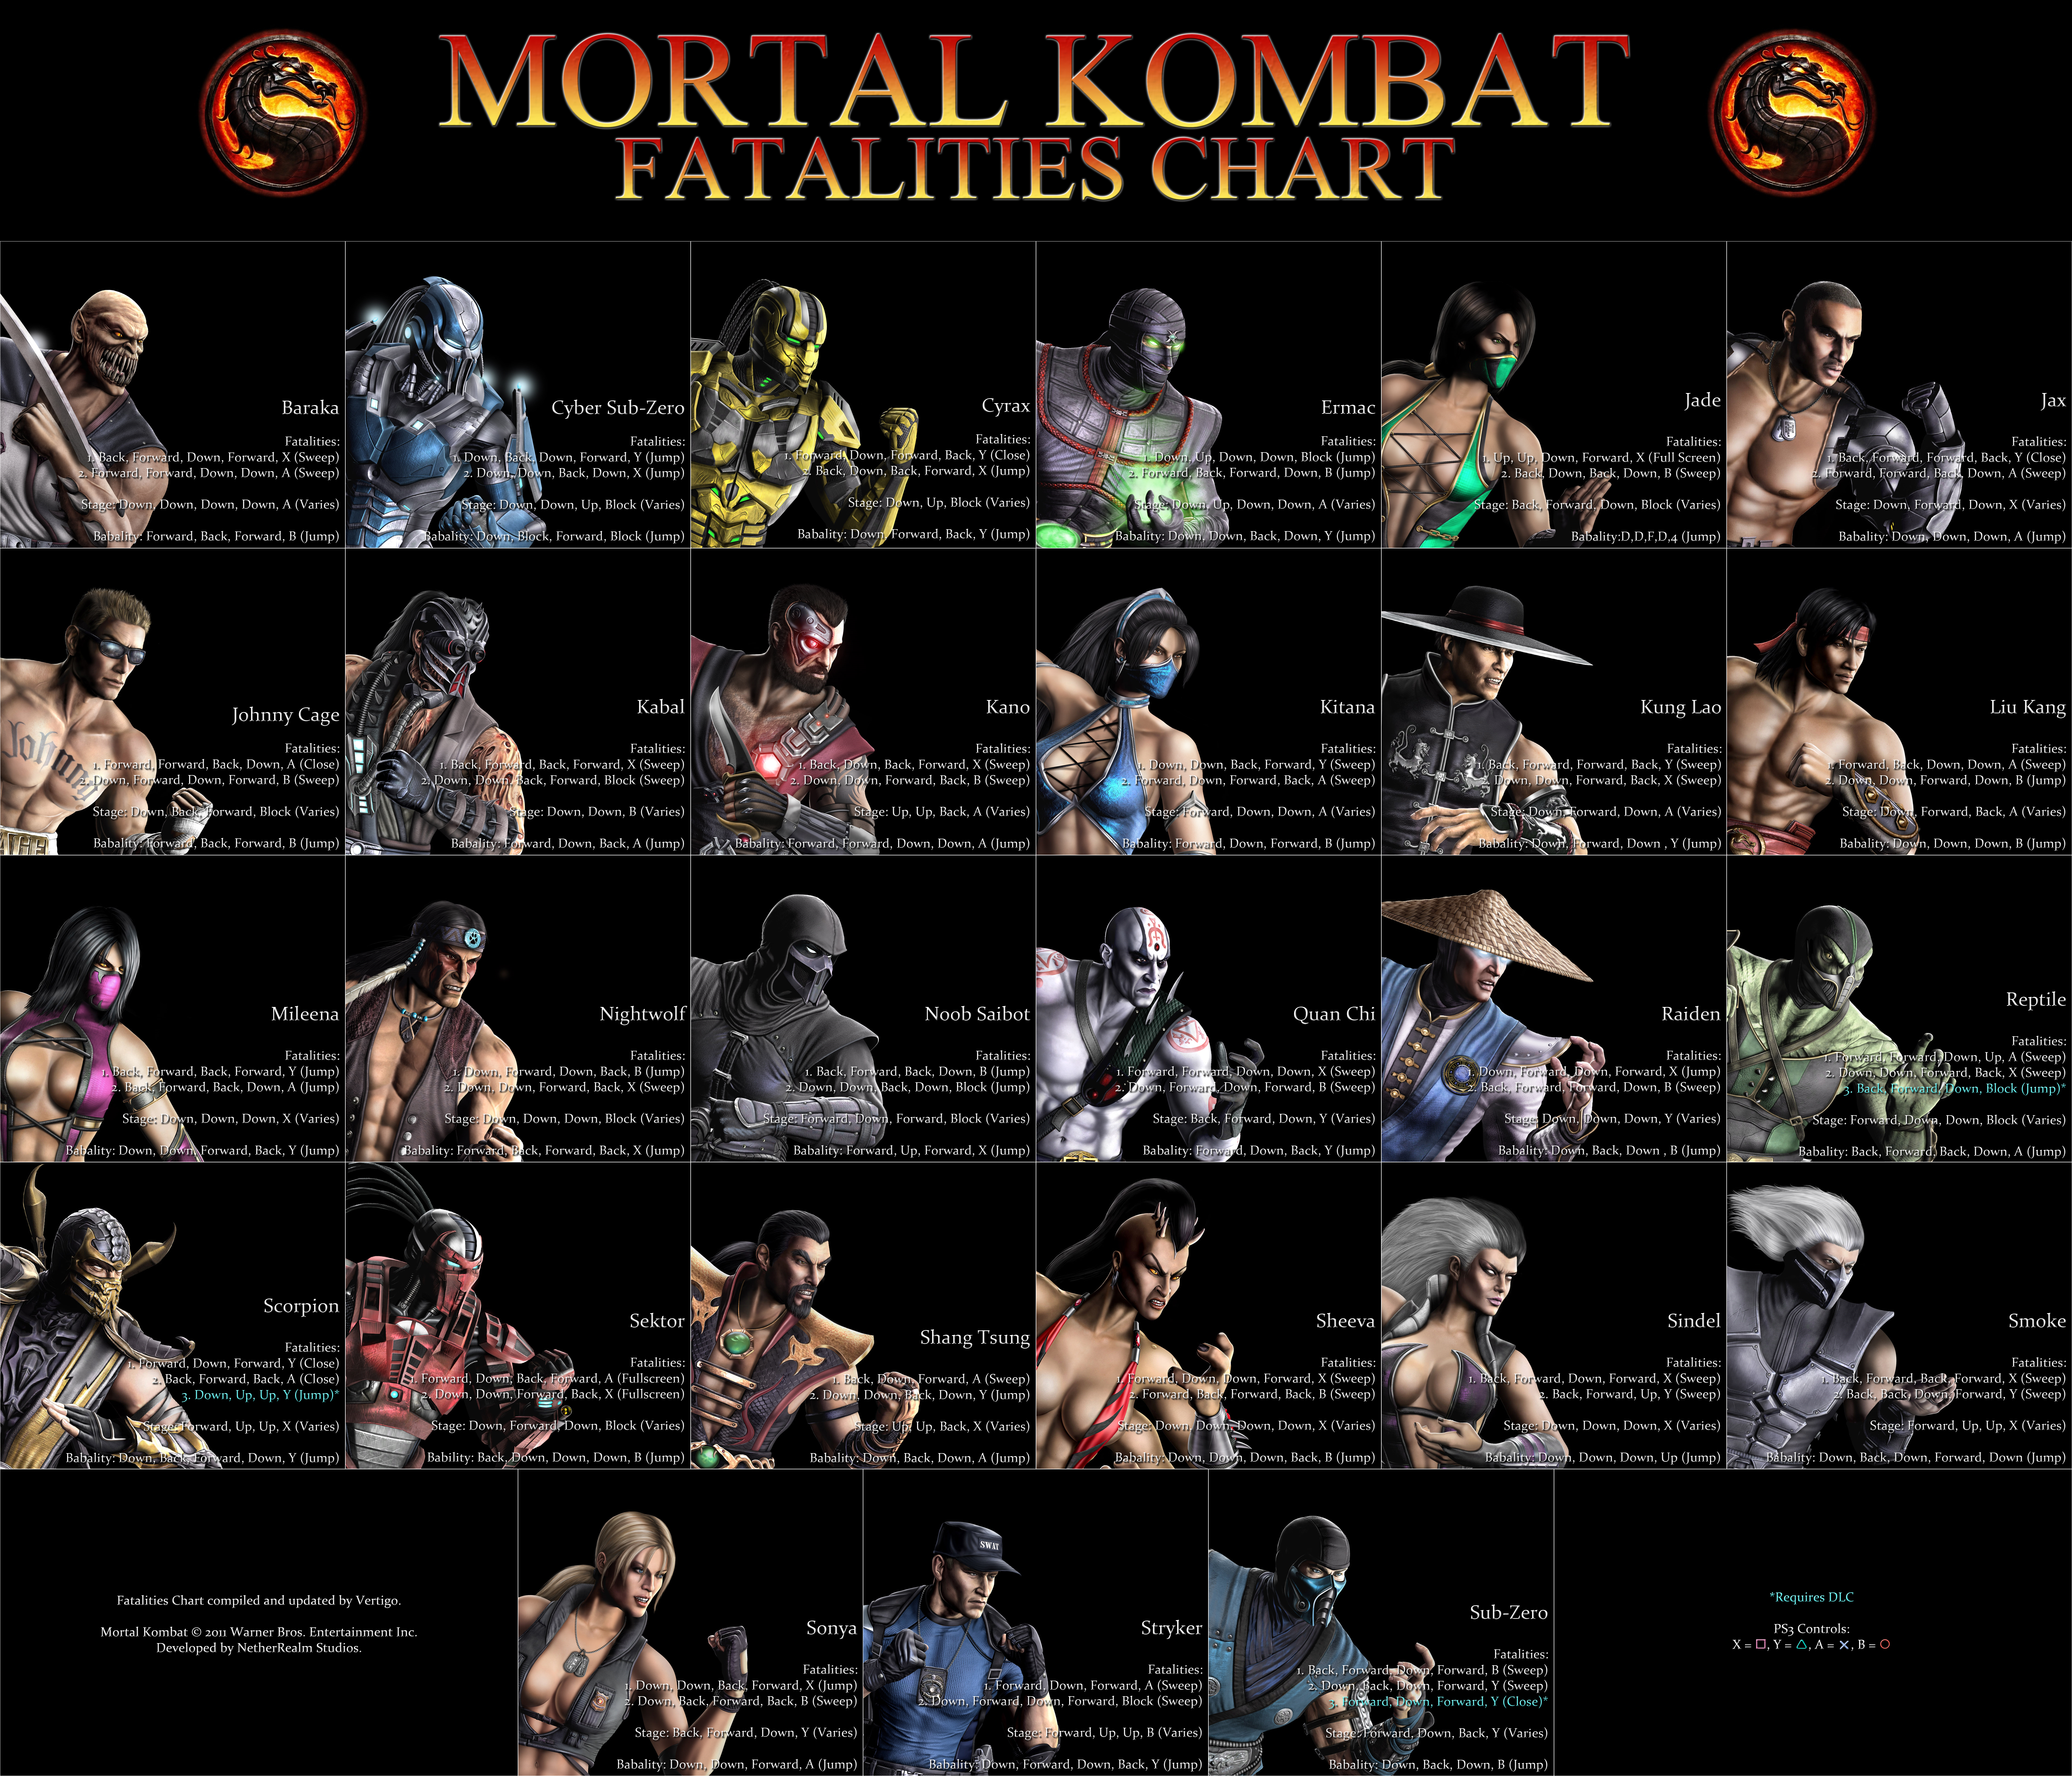 Mortal Kombat Fatalities Chart By Vertigo816 On Deviantart